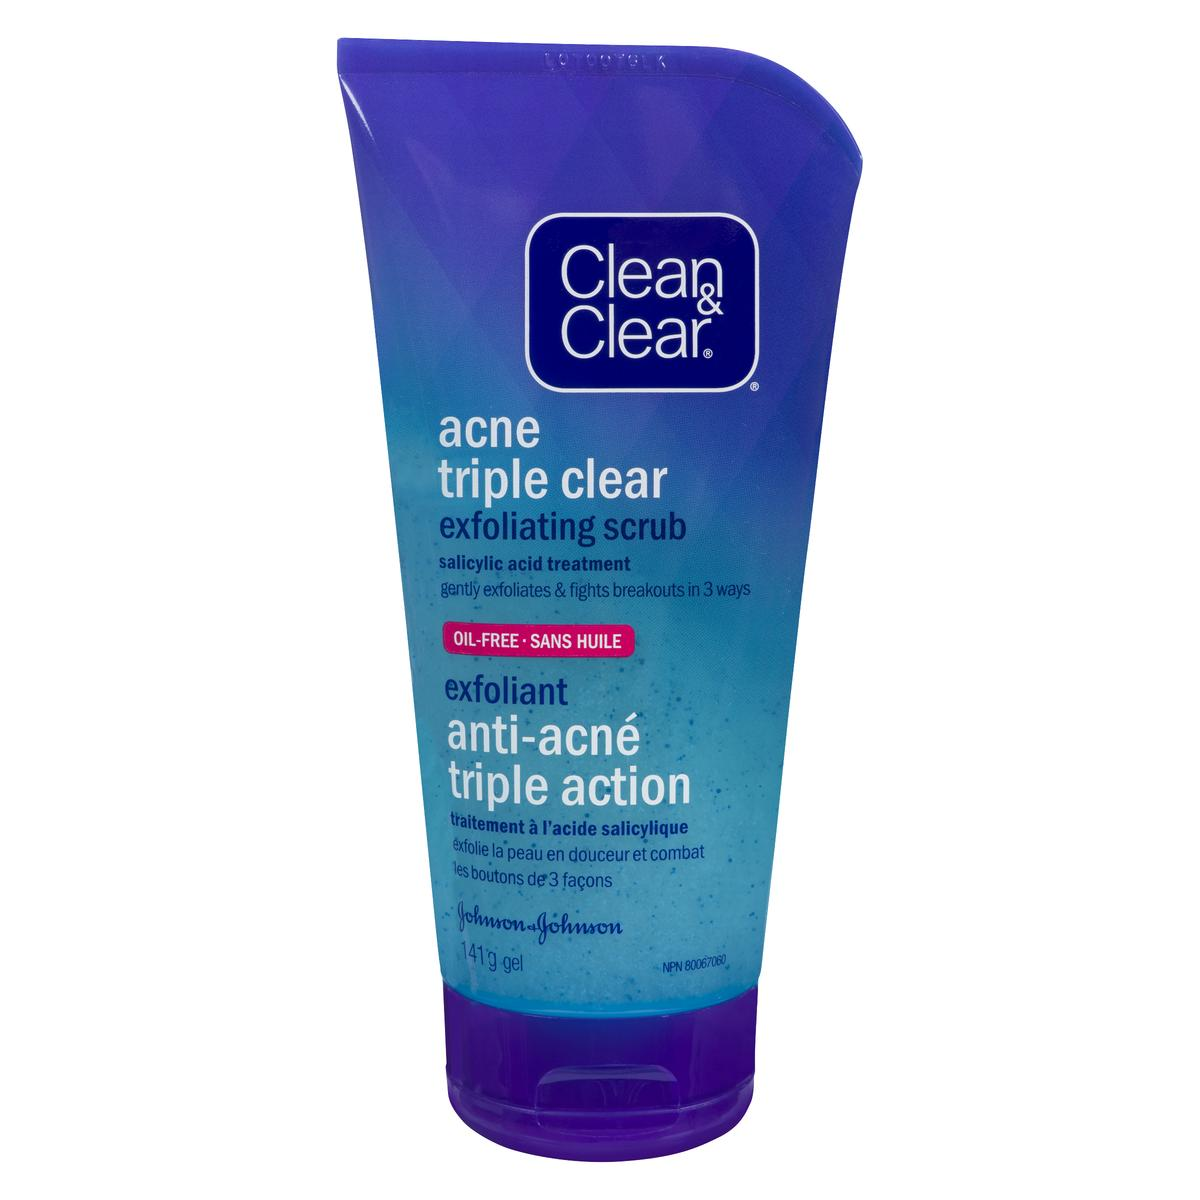 clean and clear acne exfoliating scrub tube